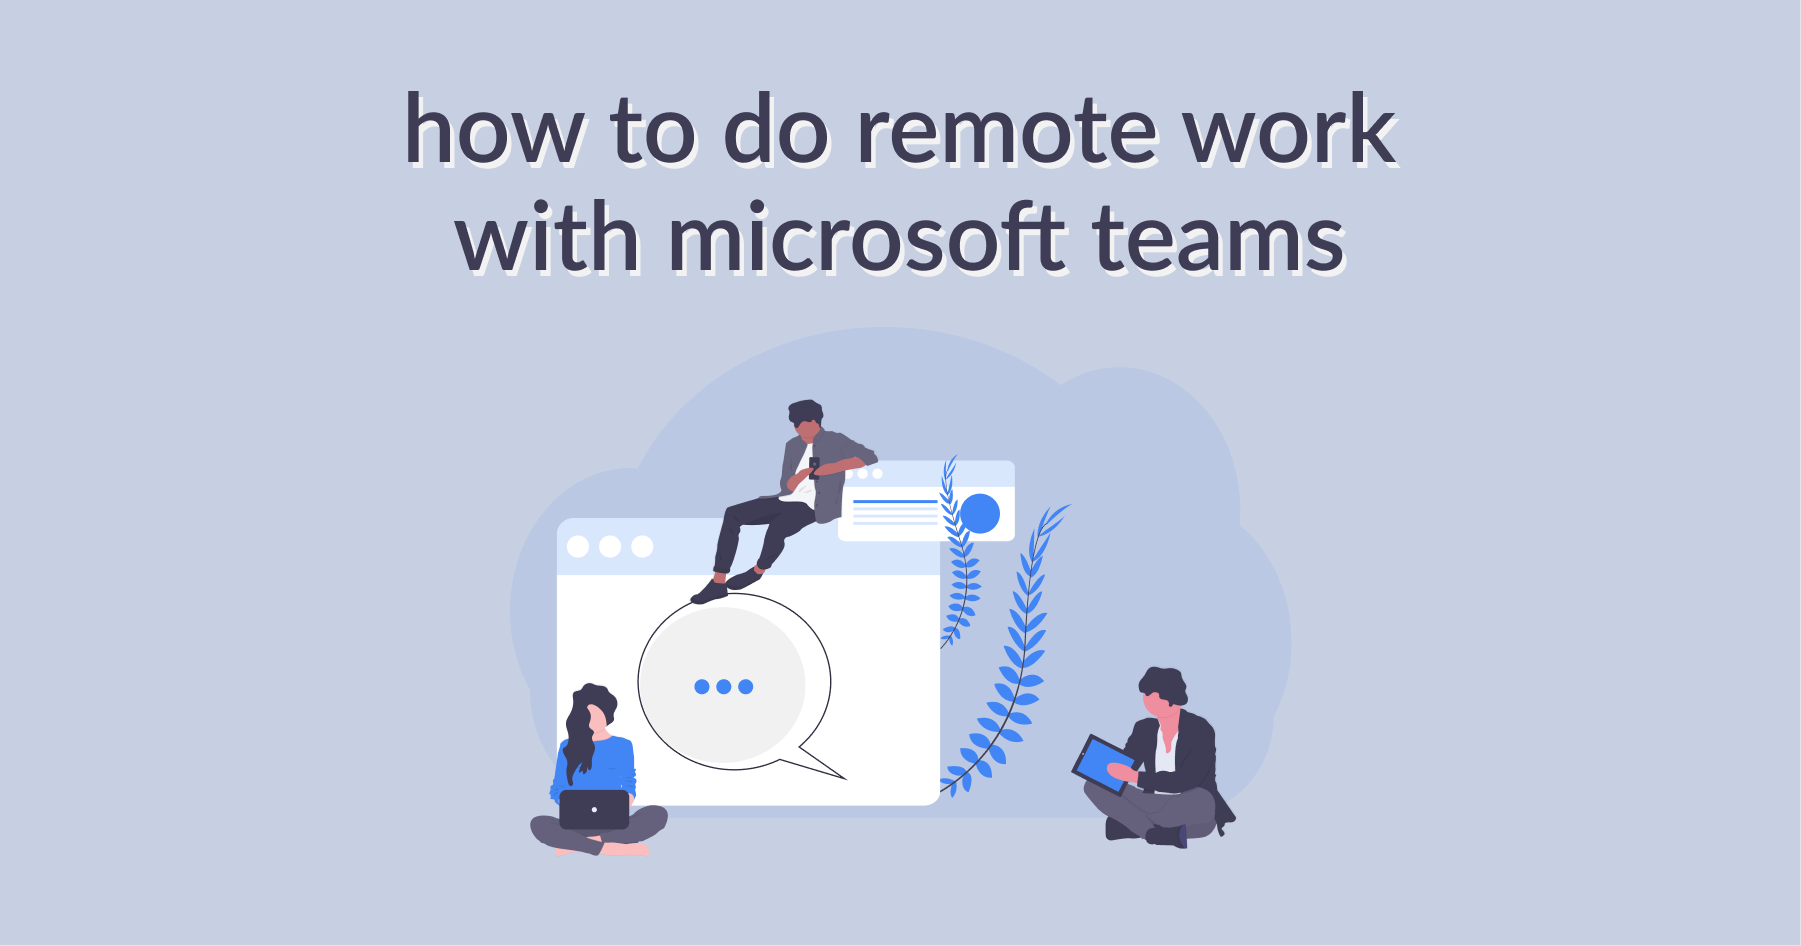 How to Do Your Best Remote Work with Microsoft Teams